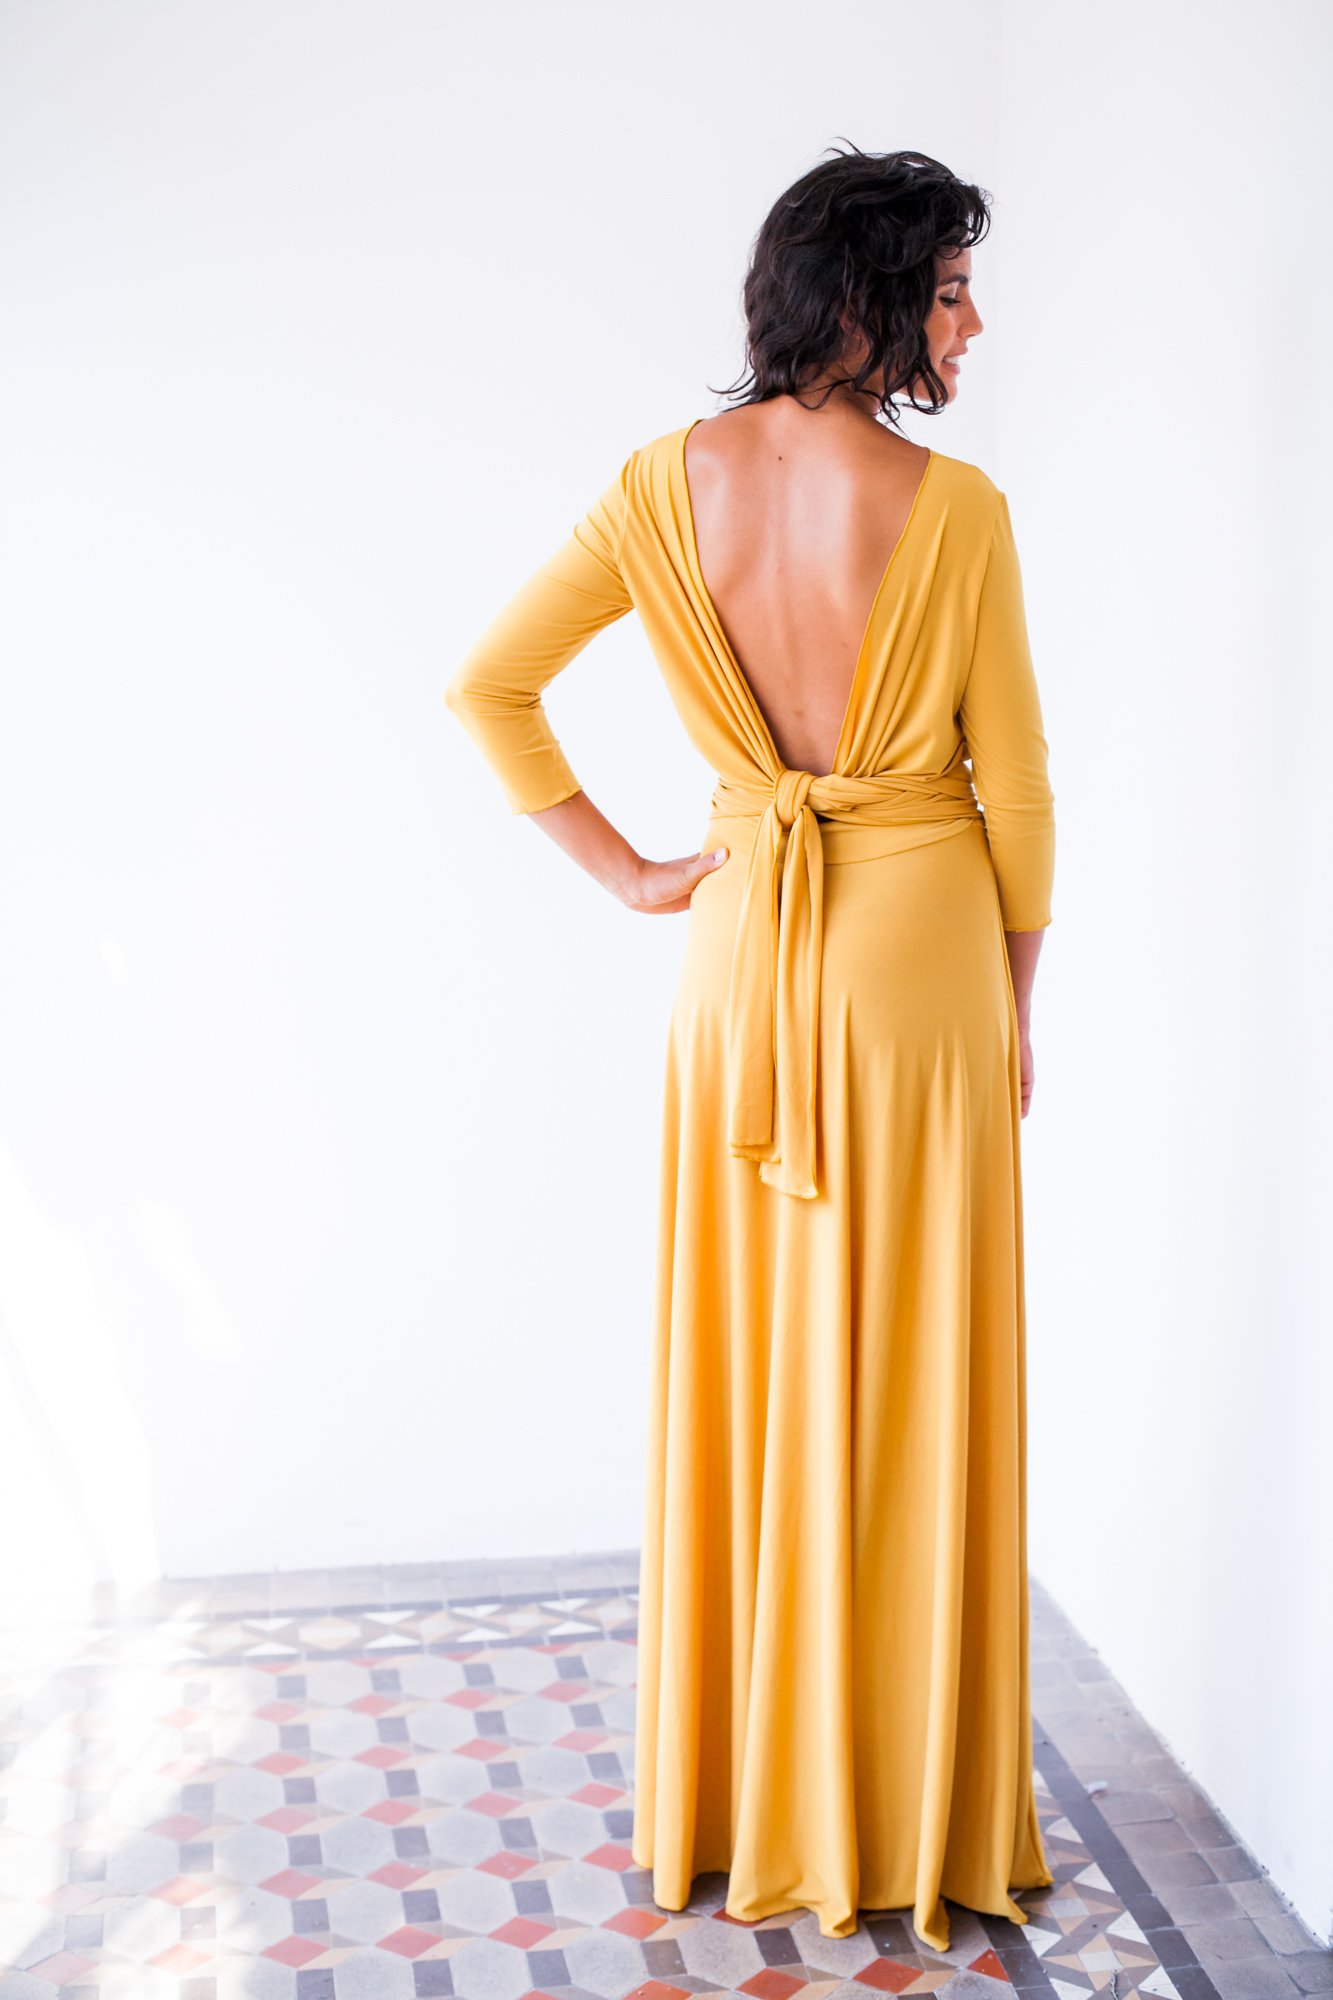 Long yellow dress with sleeves, yellow evening dress with sleeves, mustard yellow dress, mustard long sleeve dress, long yellow wrap dress